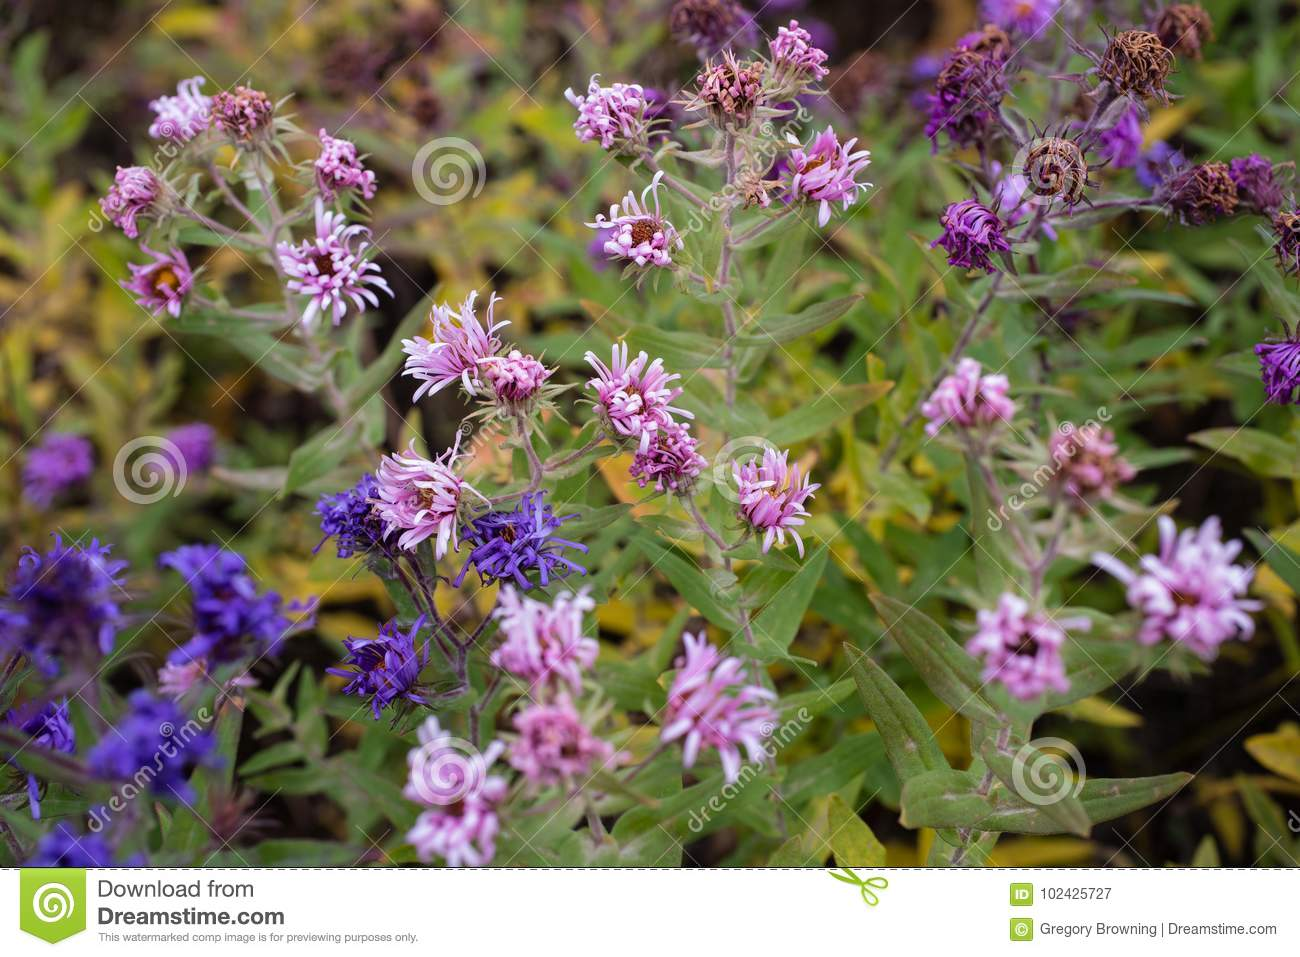 Pretty purple fall blooms stock image image of flowers 102425727 pretty fall blooming flowers in shades of purple mightylinksfo